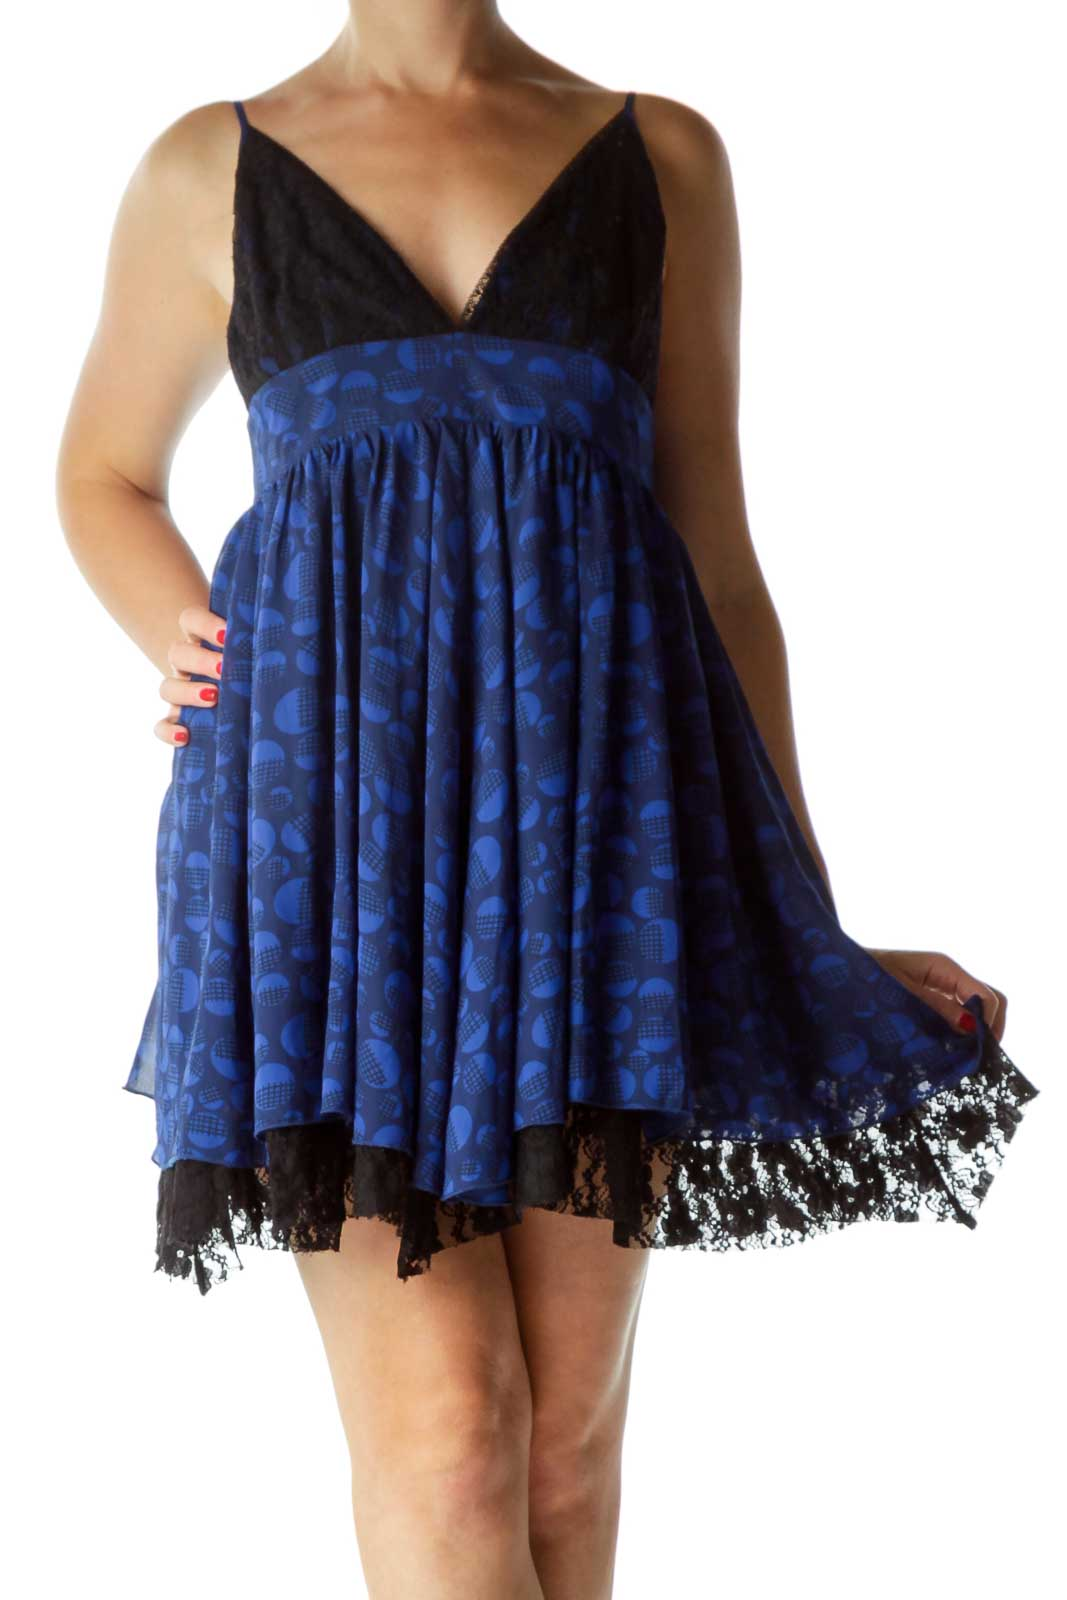 Blue Black Laced Printed Spaghetti Strap Dress Front